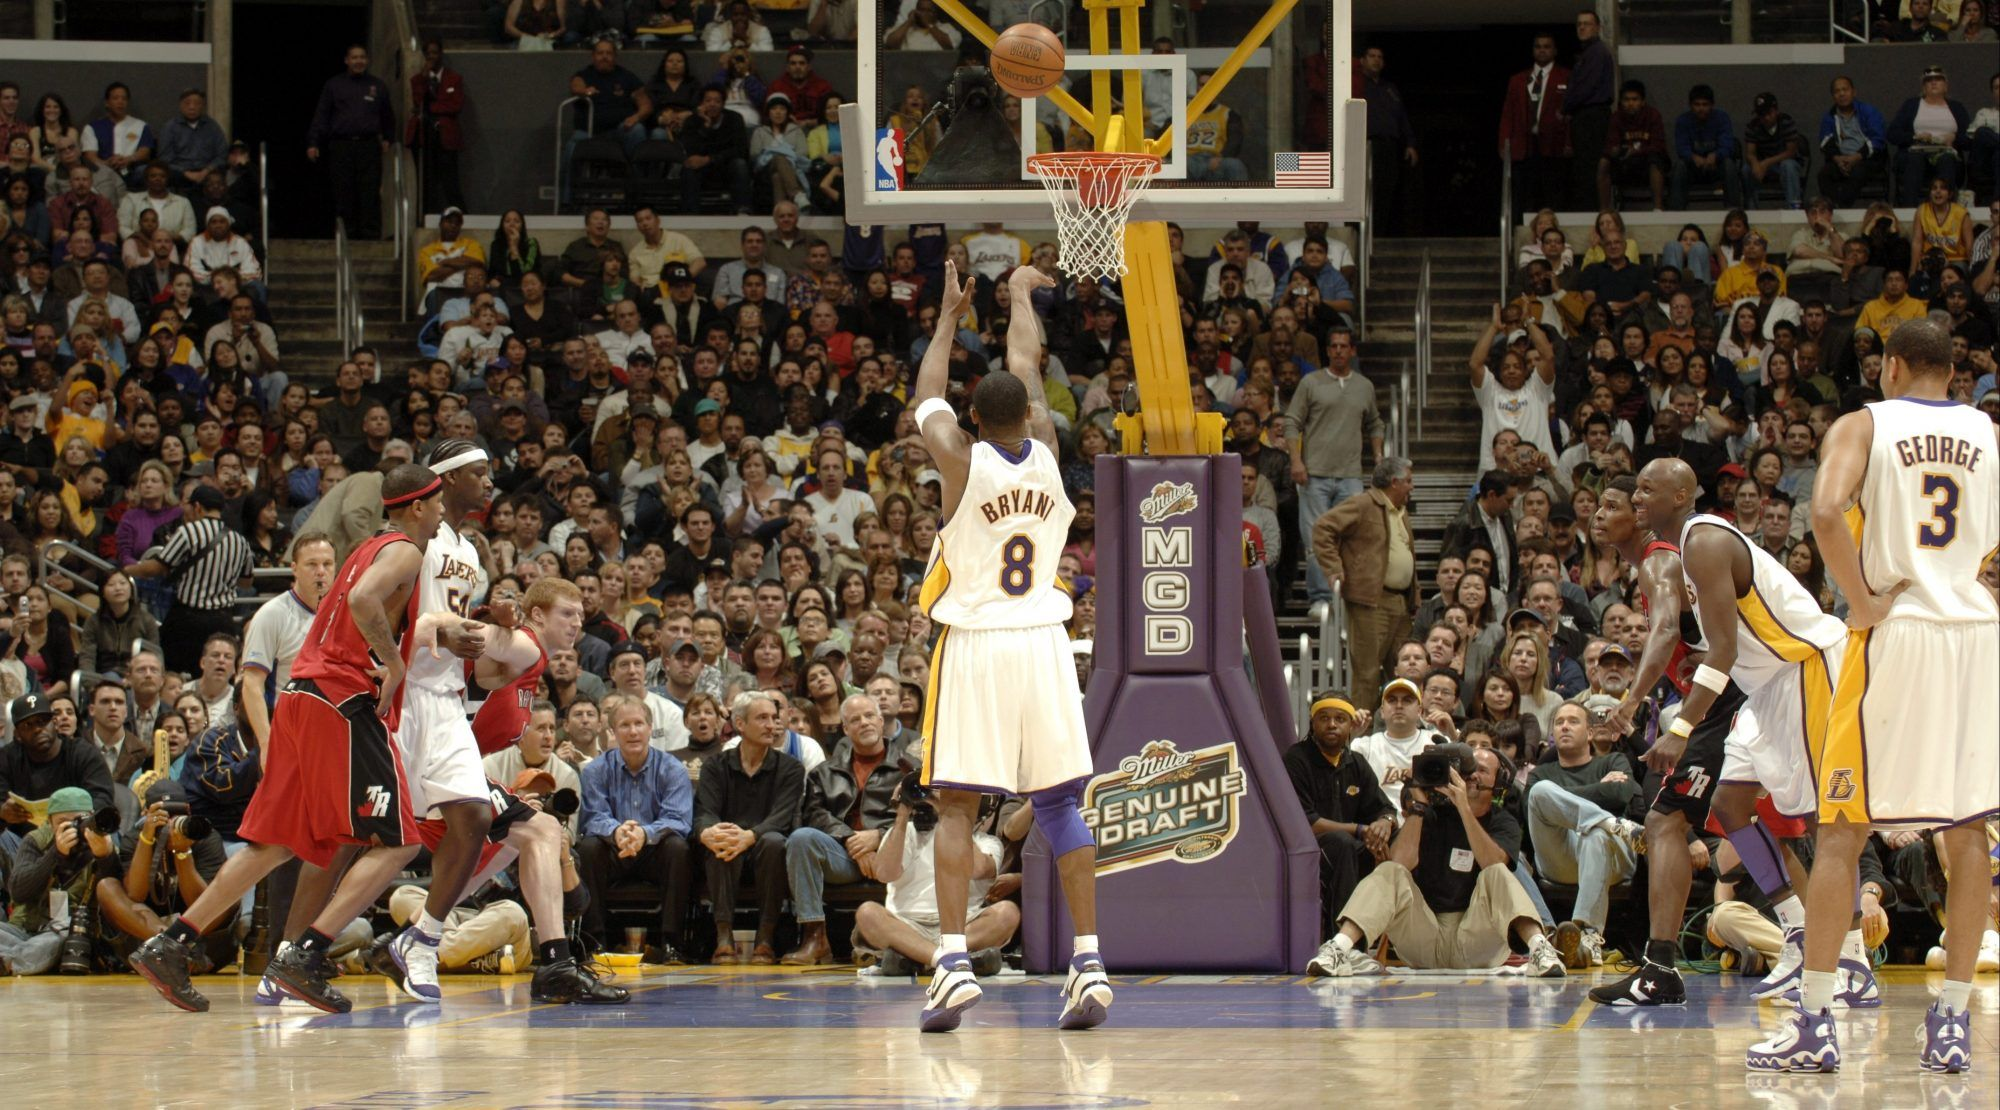 Kobe Bryant's 81-point game epitomised his approach to basketball